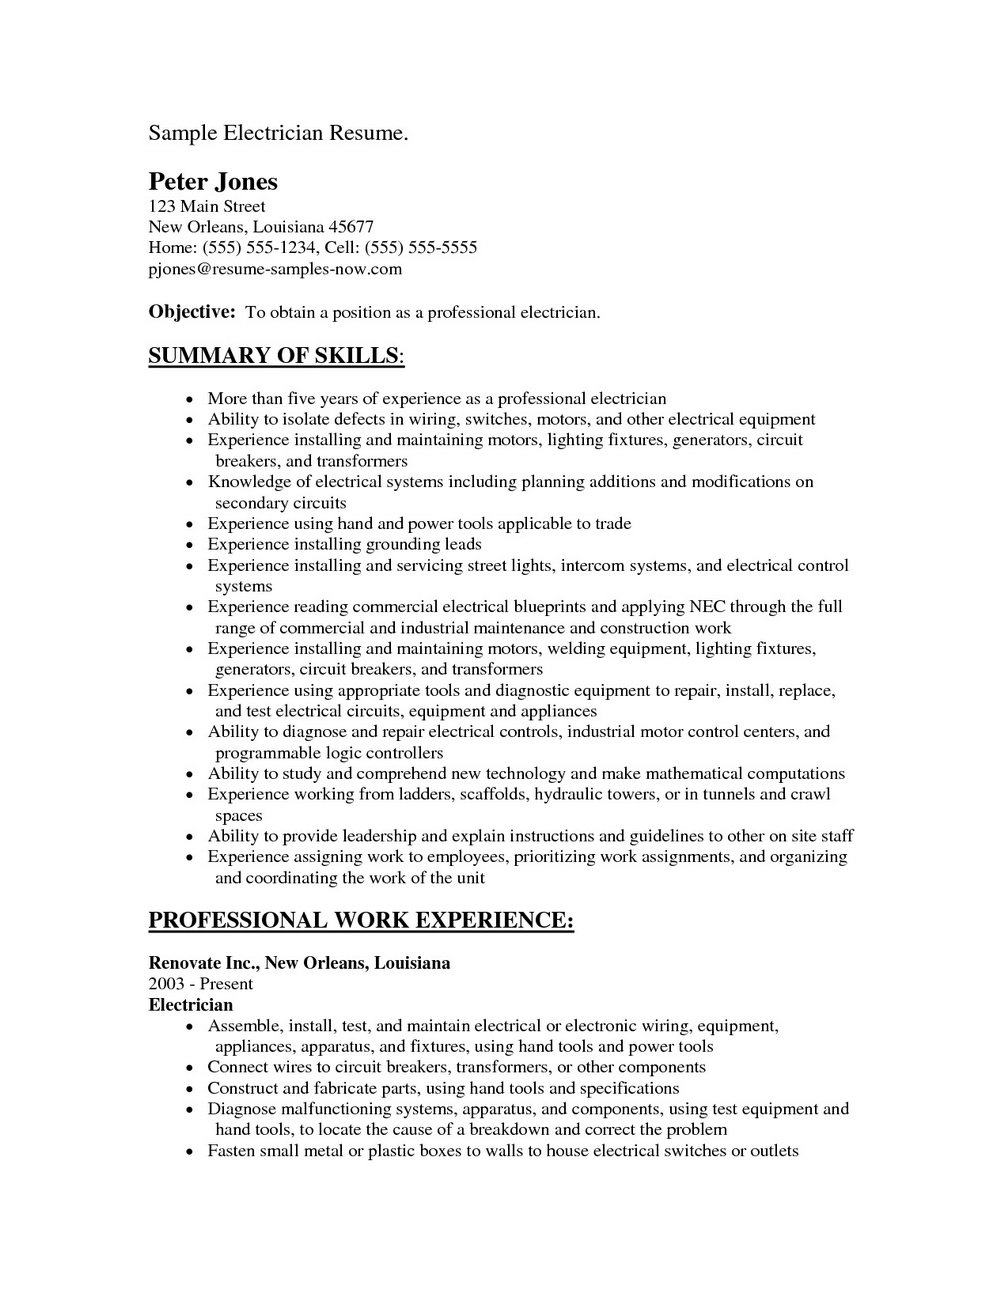 Resume Template For Electrician - Resumes #MjU4Mw | Resume ...